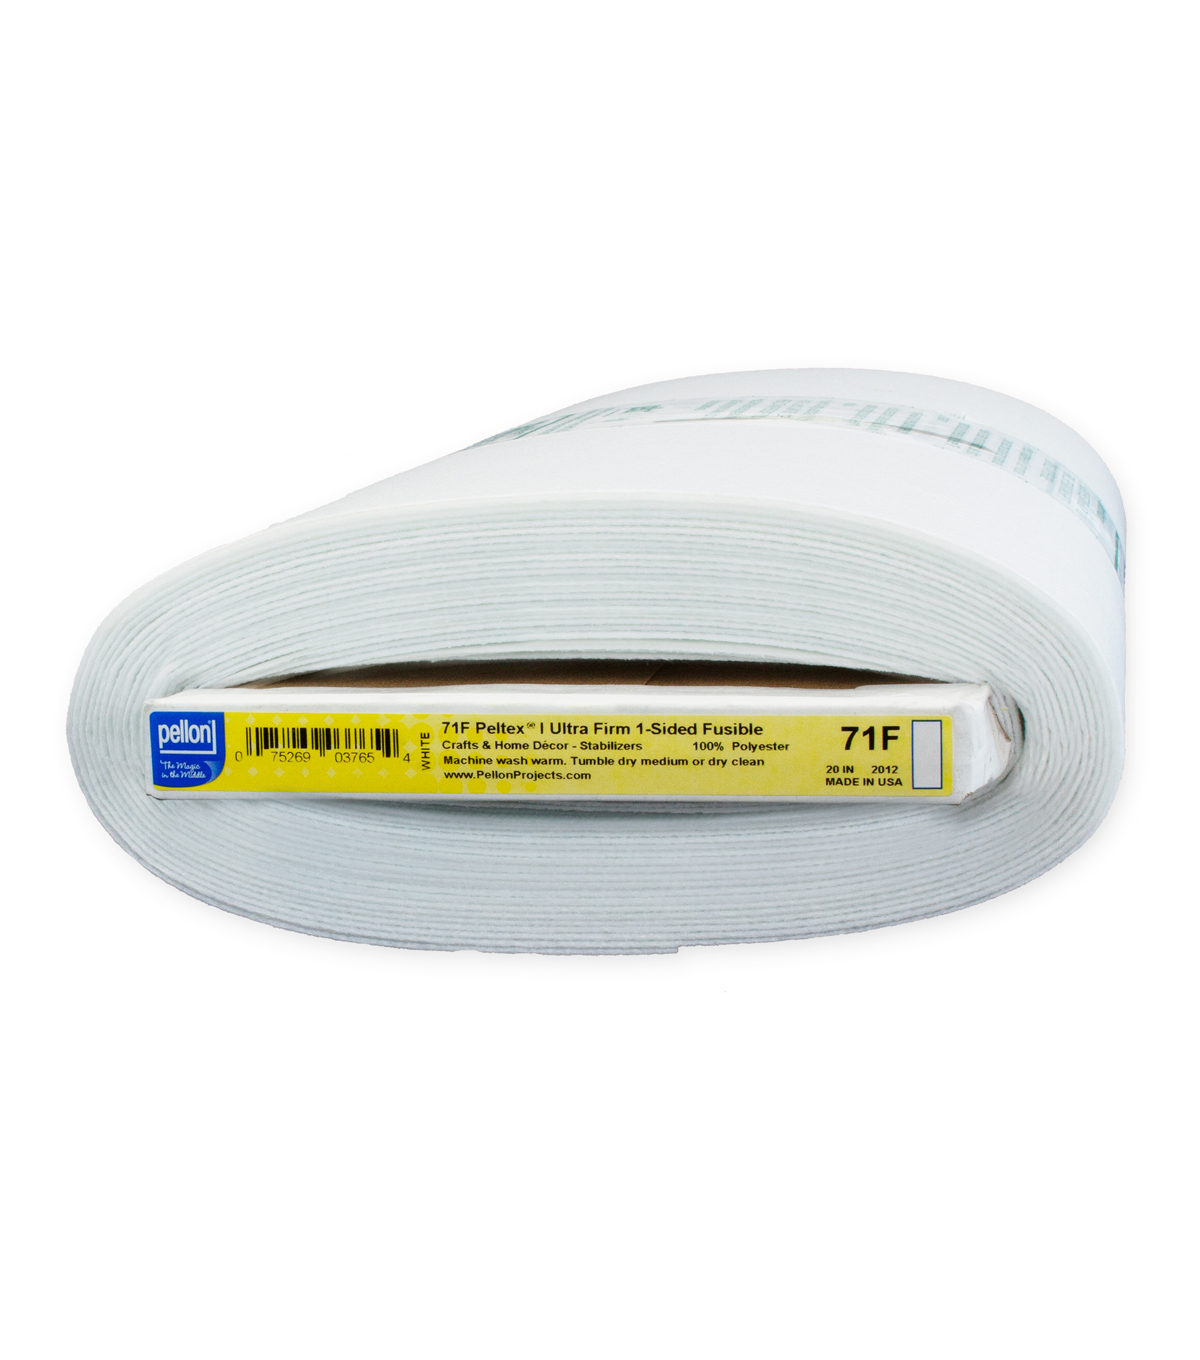 71f Peltex Ultra Firm 1-sided Fusible